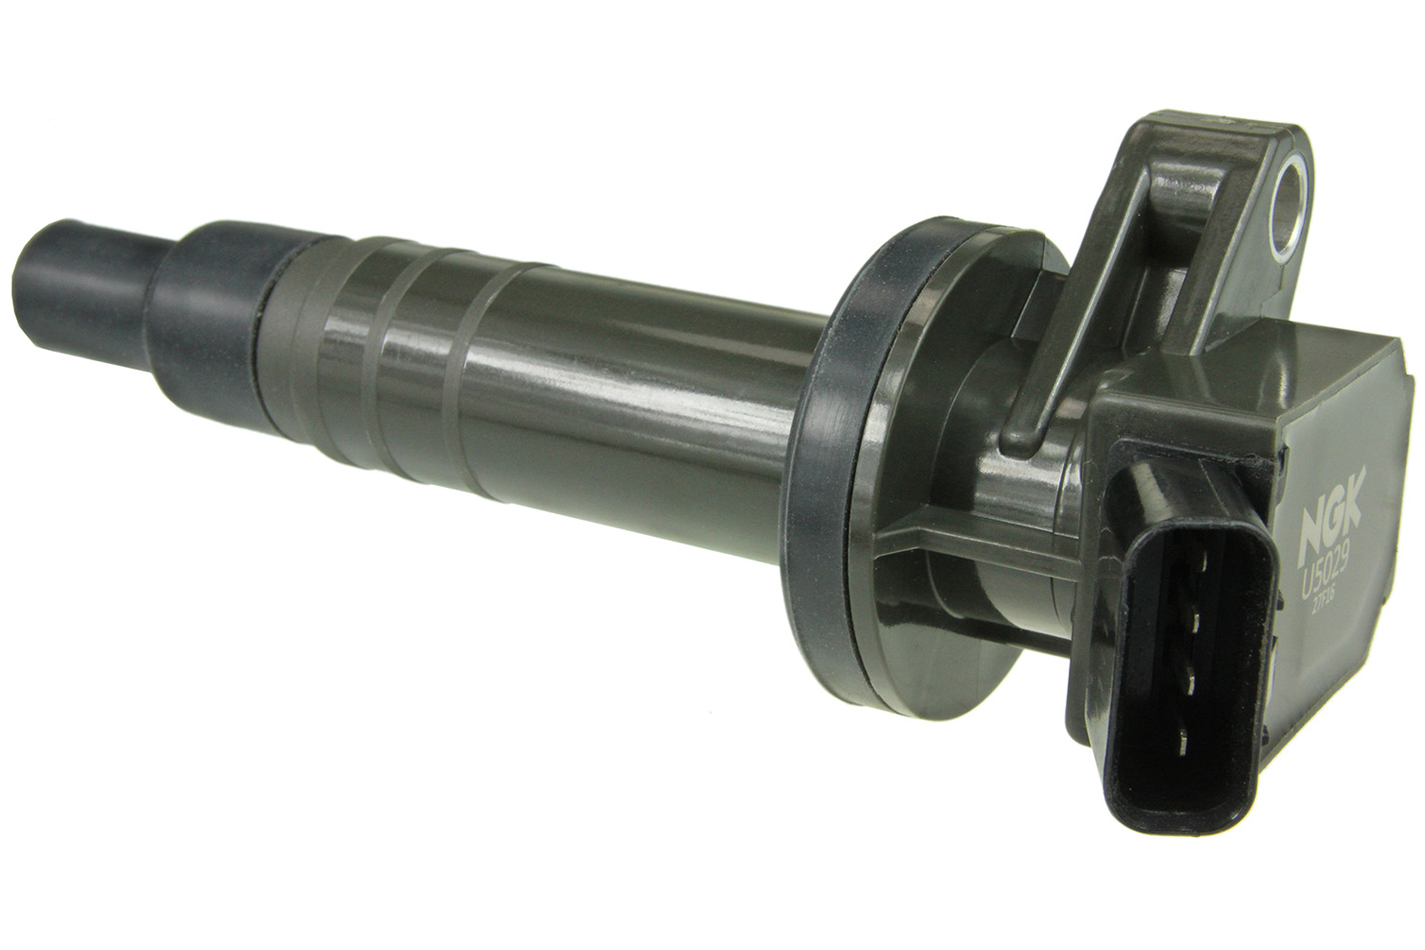 NGK U5029 Ignition Coil Pack, Coil-On-Plug, OE Specs, Black, Each